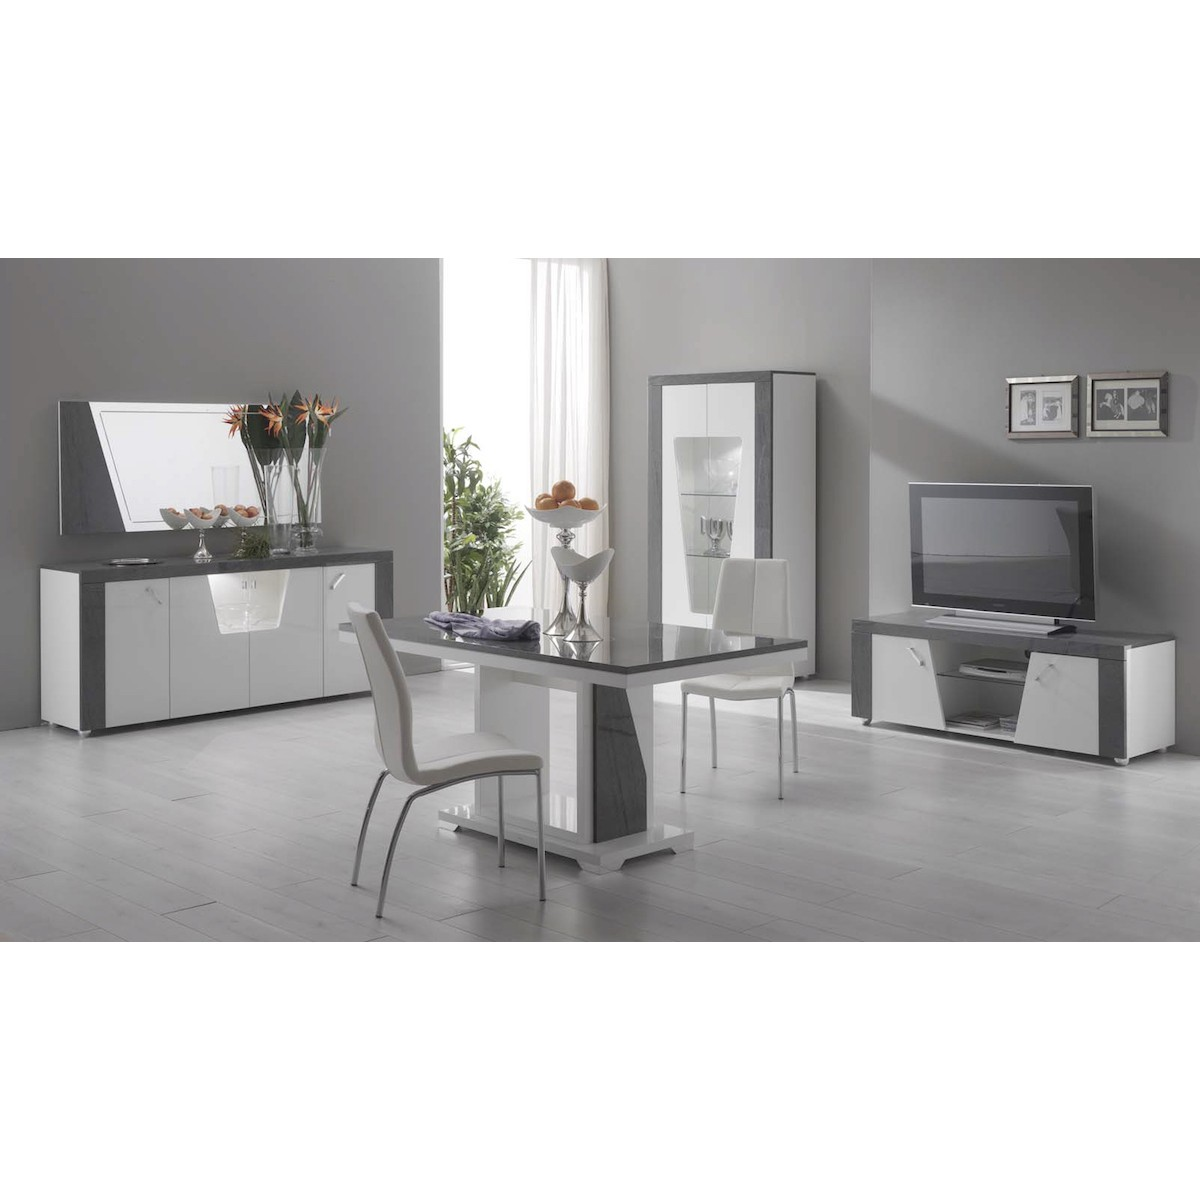 altobuy luna buffet 4 portes avec led neuf ebay. Black Bedroom Furniture Sets. Home Design Ideas